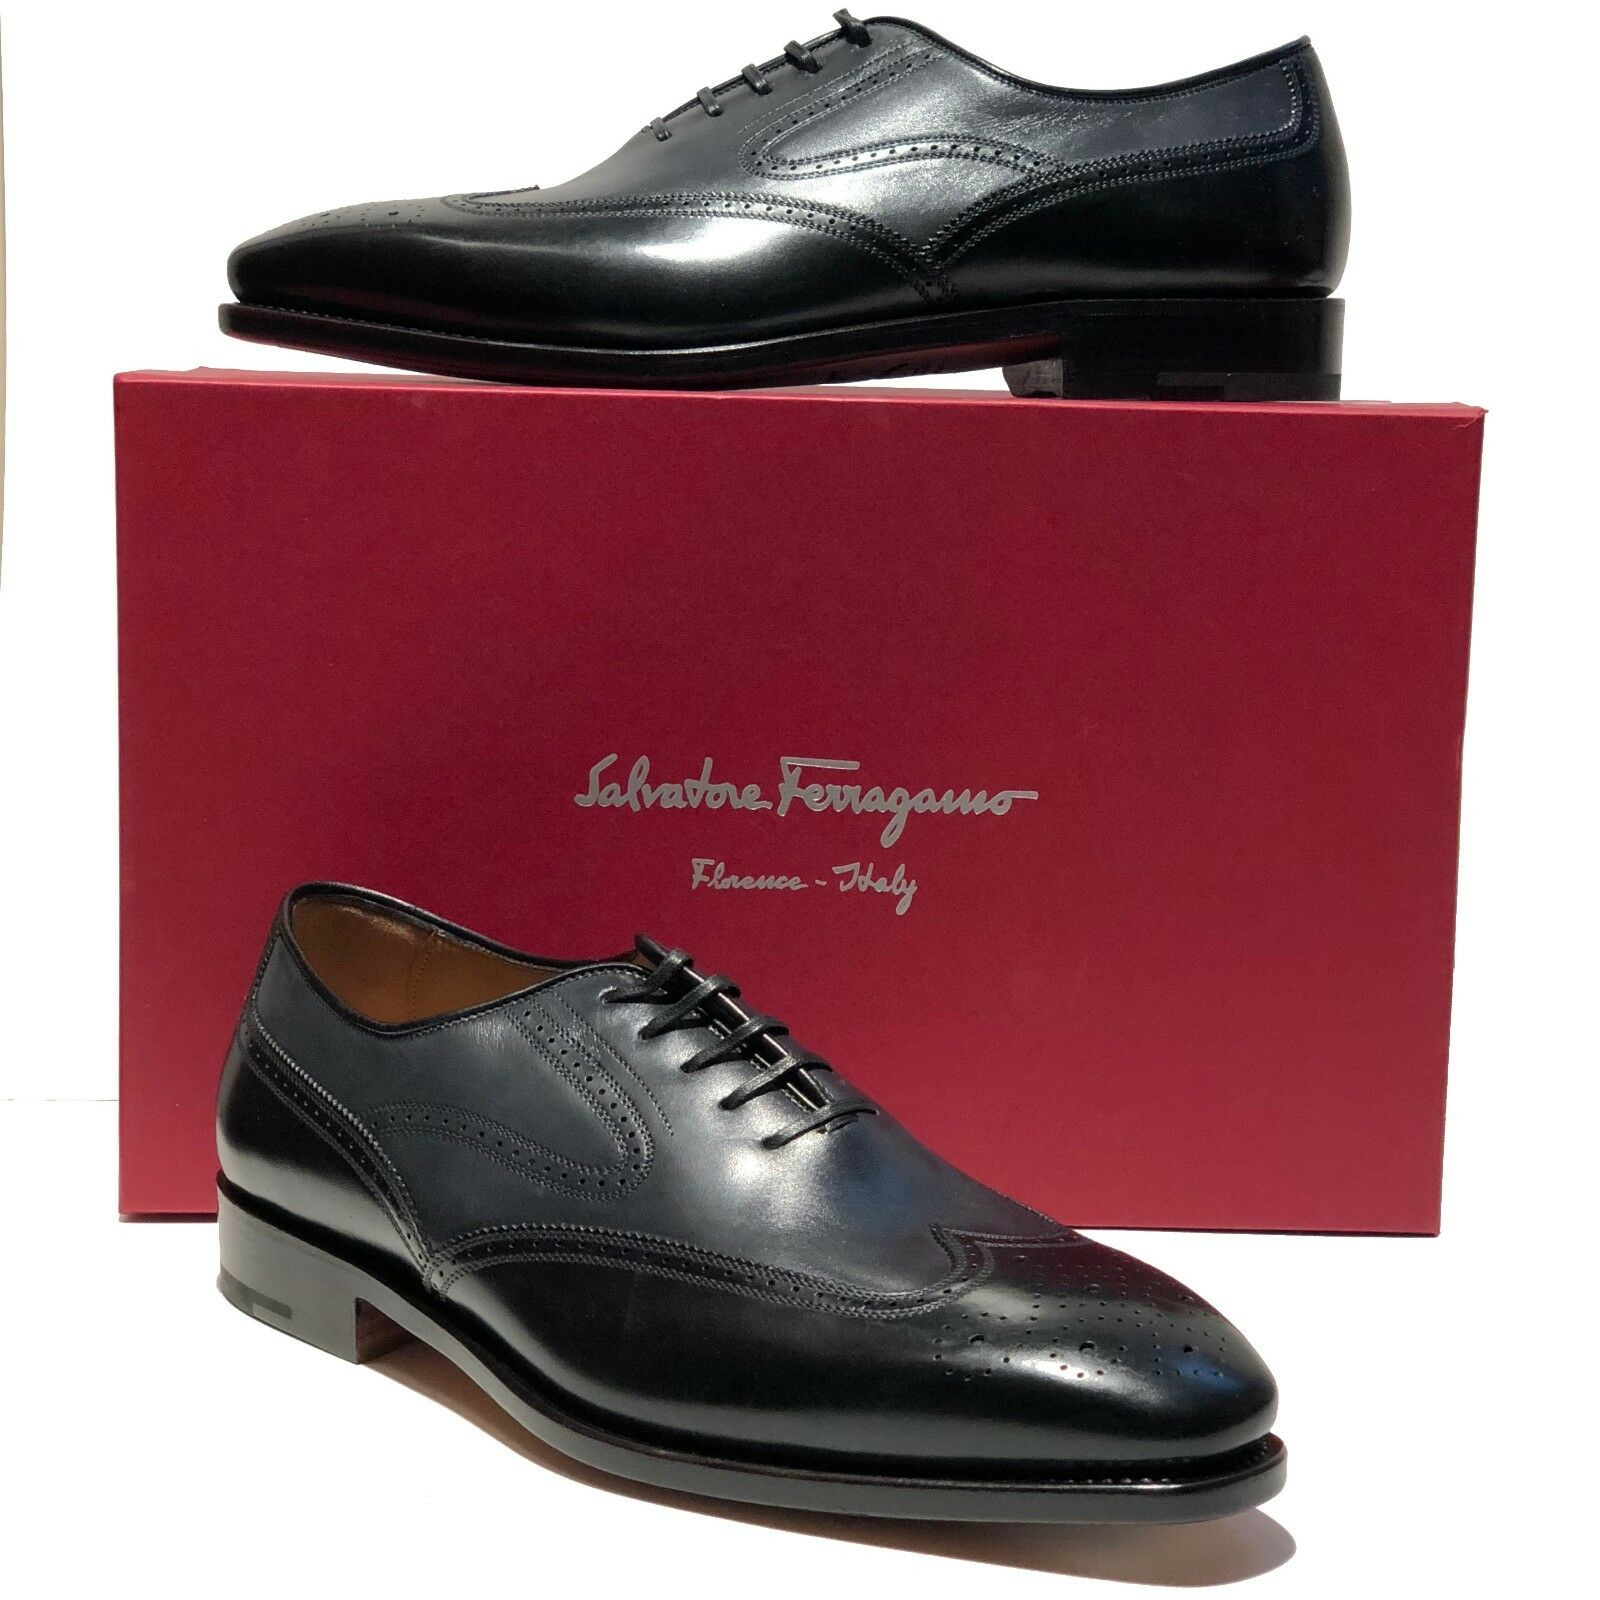 Ferragamo TRAMEZZA Fermin Men's 8.5 E Black Dress Wingtip Brogue Leather Oxford